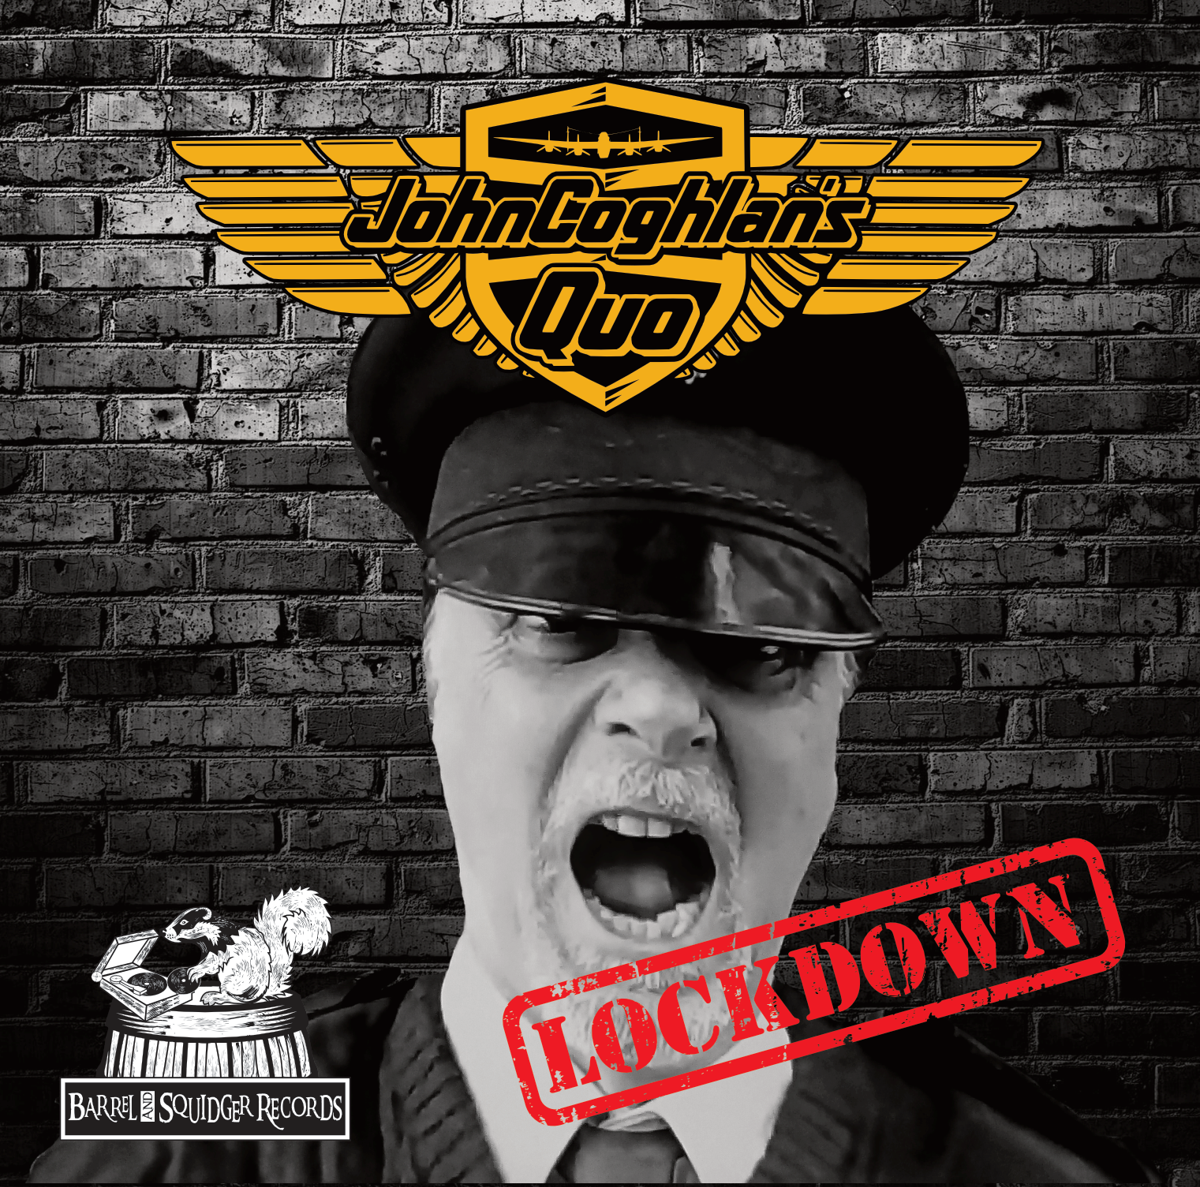 John Coghlan's Quo - Lockdown / No Return - CD single - SOLD OUT! - Barrel And Squidger Records